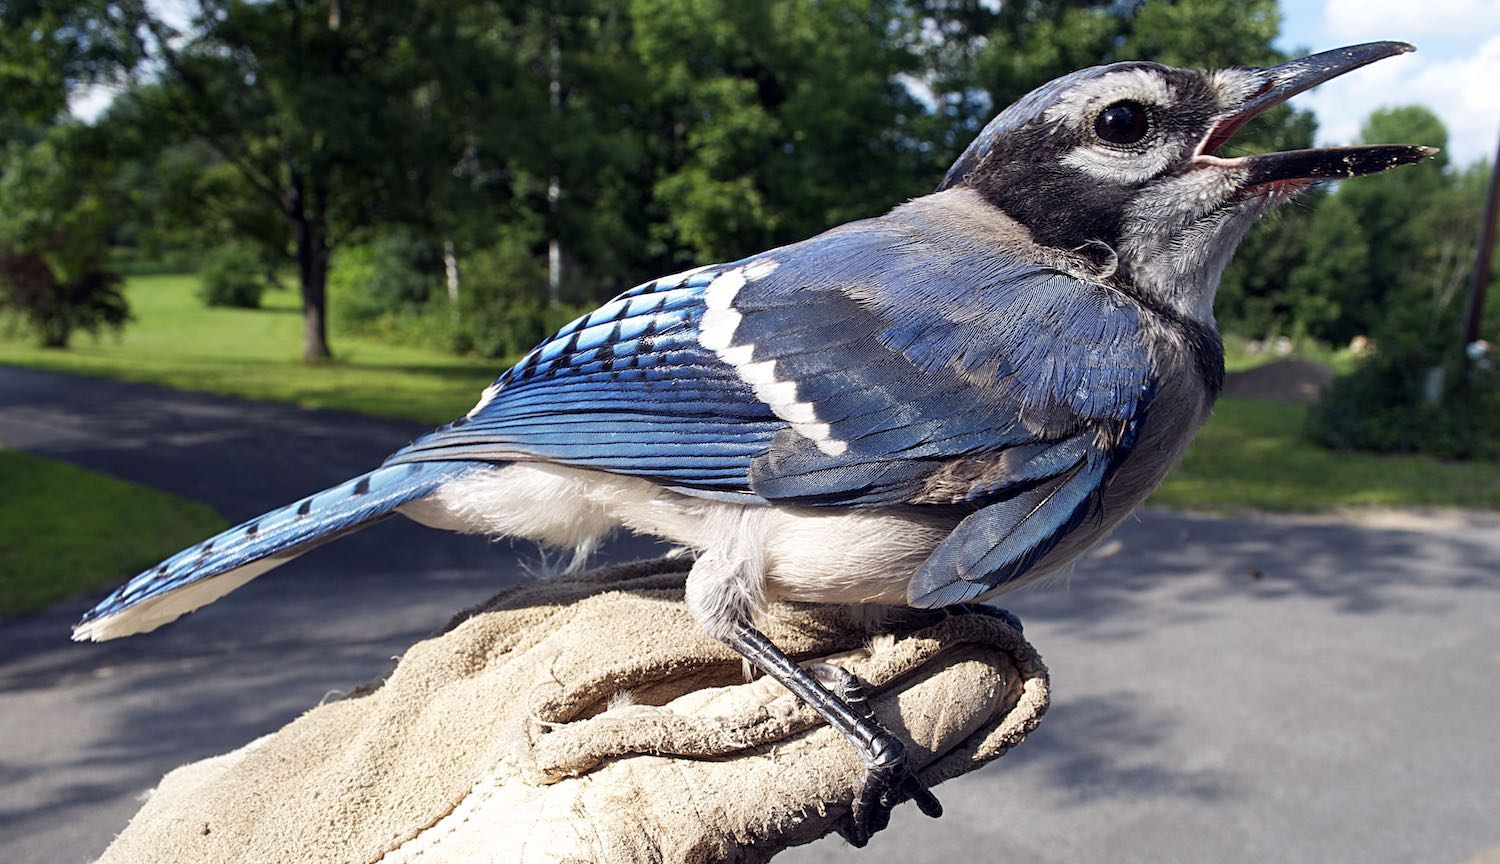 Blue jay copy 2.jpg